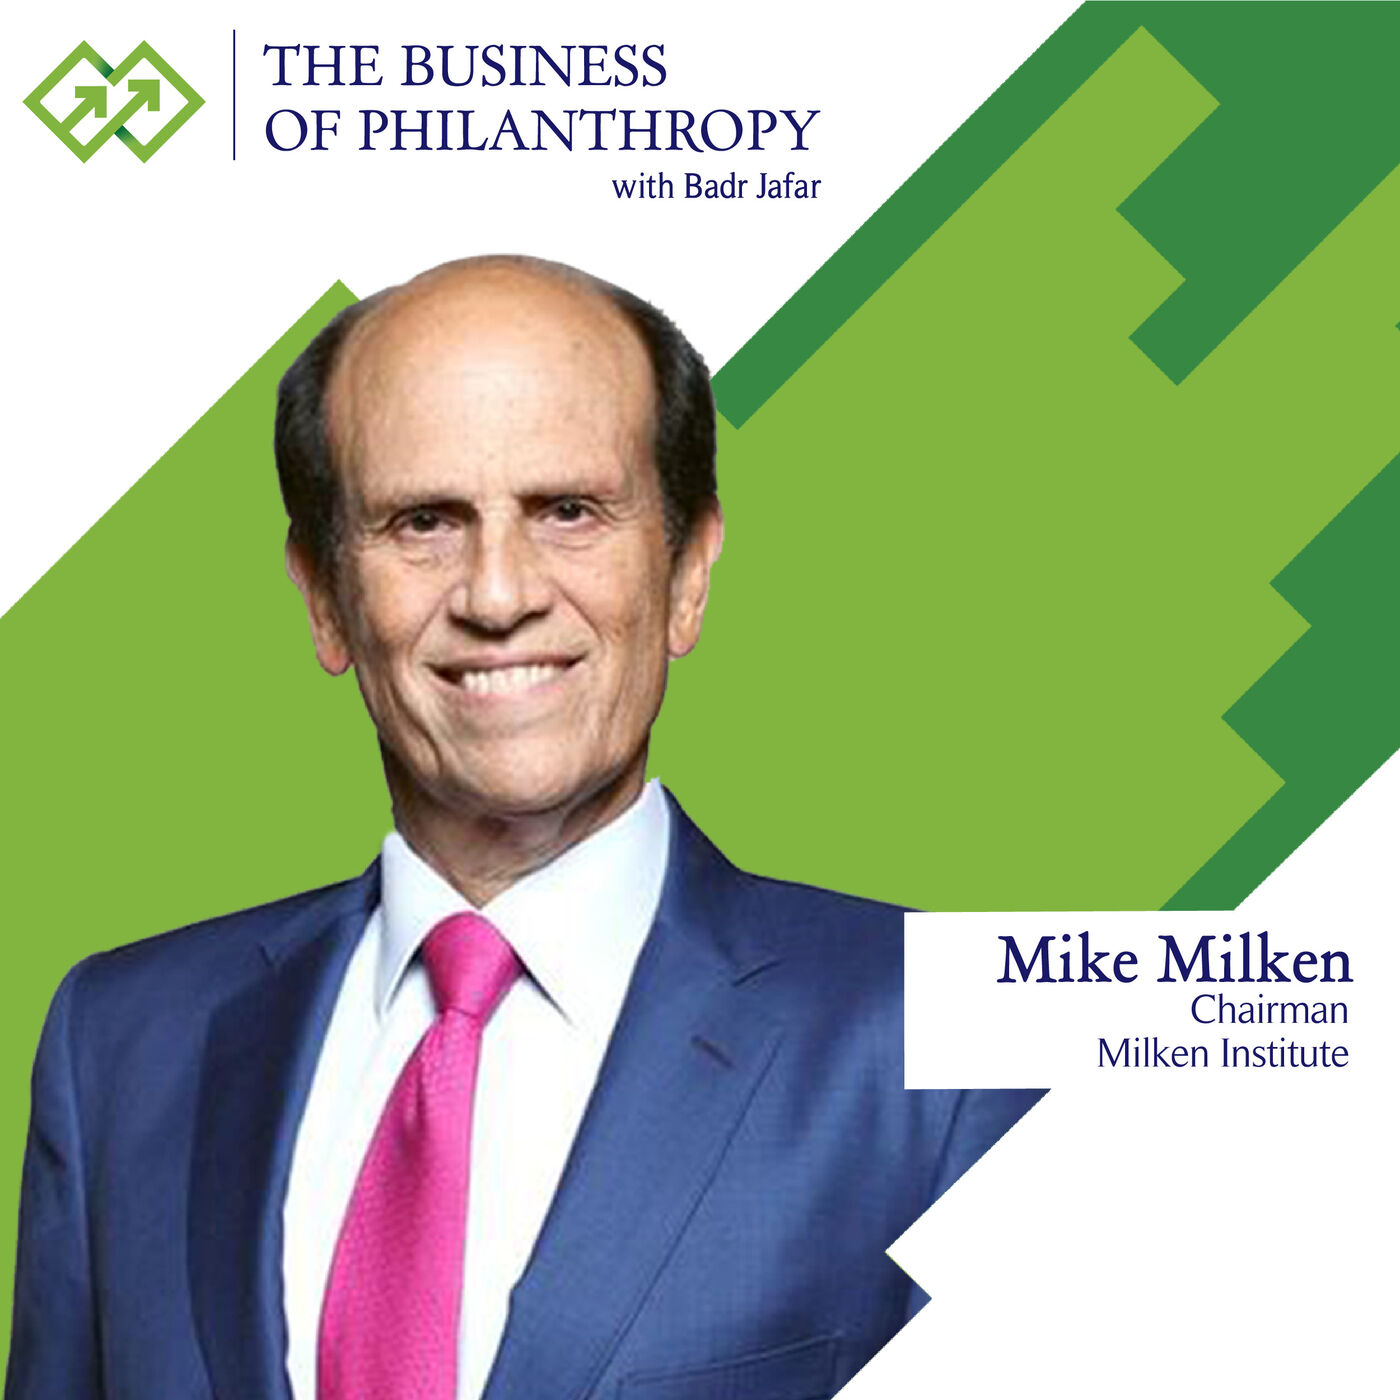 Mike Milken; A Conversation with Badr Jafar